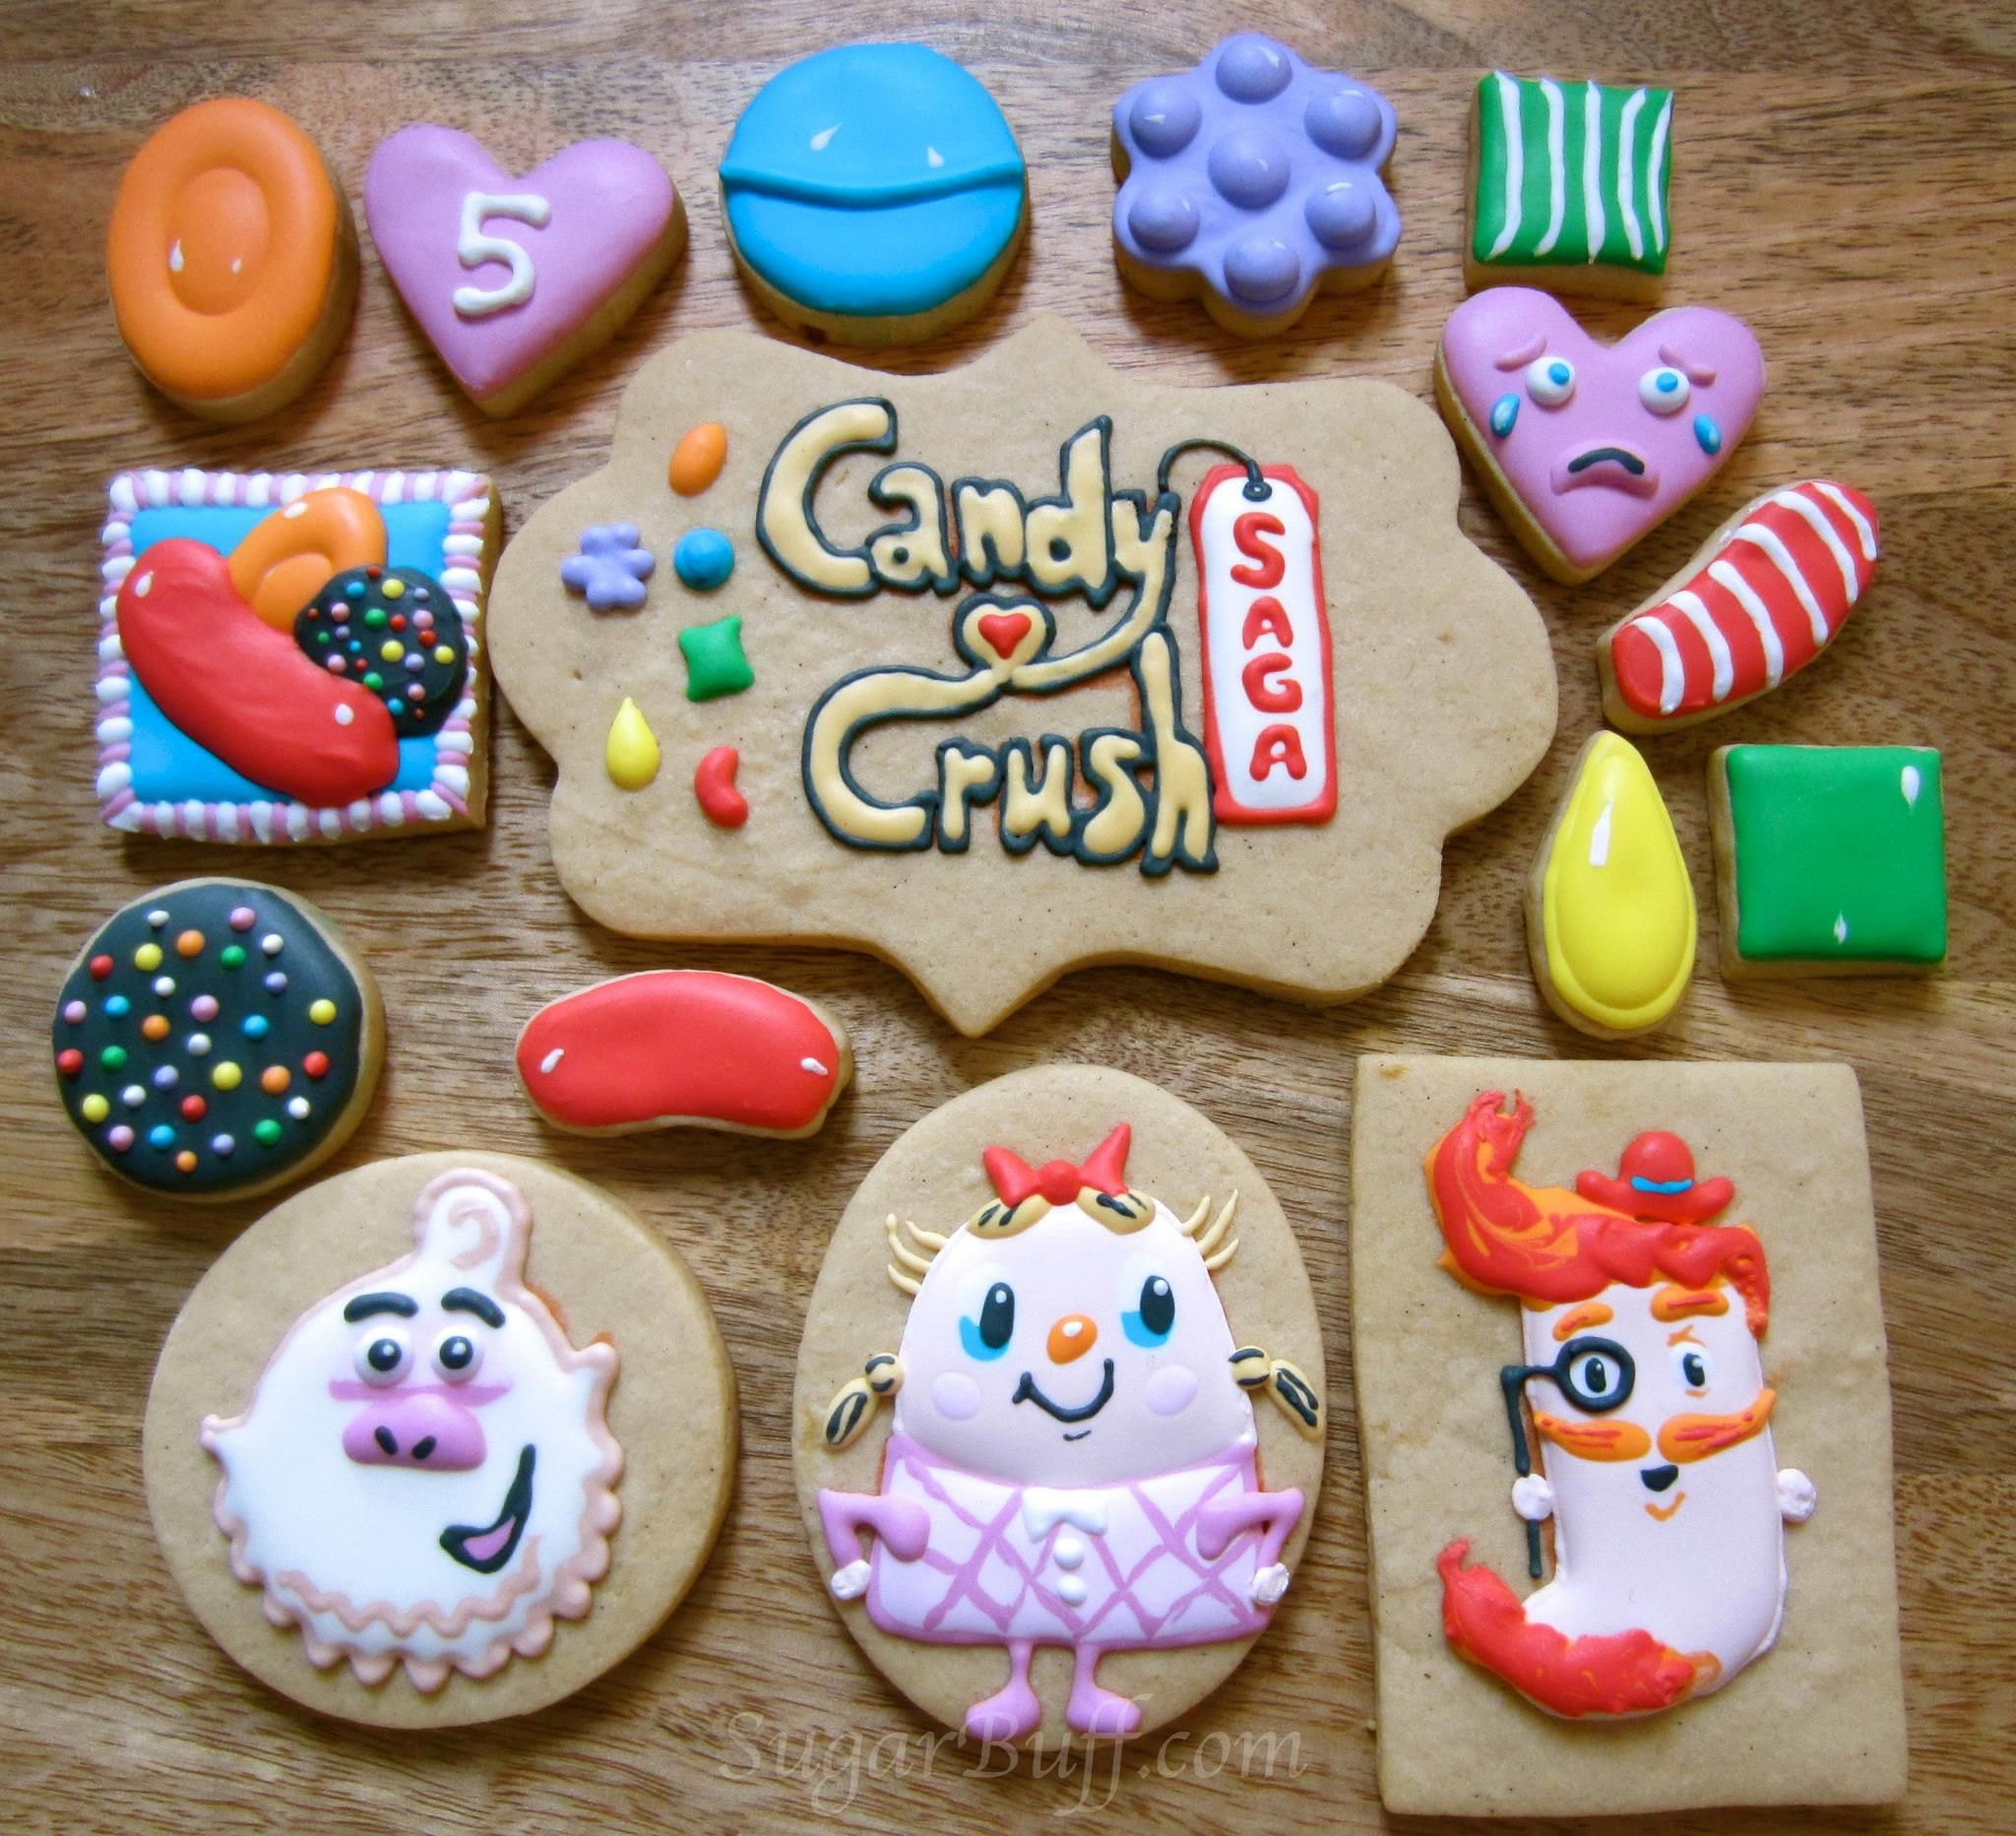 1000 images about Cupcakes en taarten on Pinterest Candy crush. Candy Crush Saga Cookies by SugarBridget pinned by TheCookieCutterCompany www